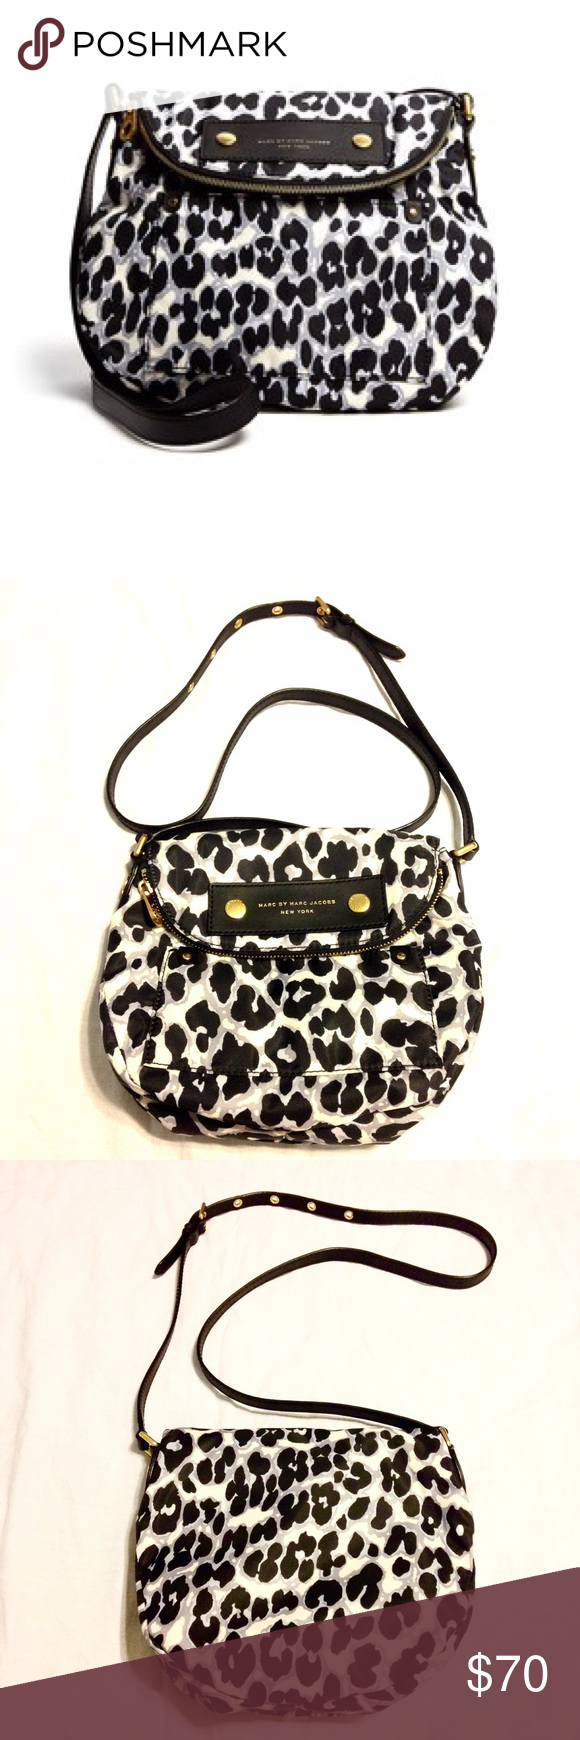 ❗️SALE❗️Marc Jacobs Leopard Print Sasha Crossbody Practically brand new. Used it only once, it's not really my style. Colors are white, black, purple. Hardware is gold, material is nylon. Measurements: 10 x 3 x 8.5. This was my first and only Marc Jacobs purse and I'm willing to part. Condition is excellent. Absolutely no trades or lowball offers. Marc by Marc Jacobs Bags Crossbody Bags